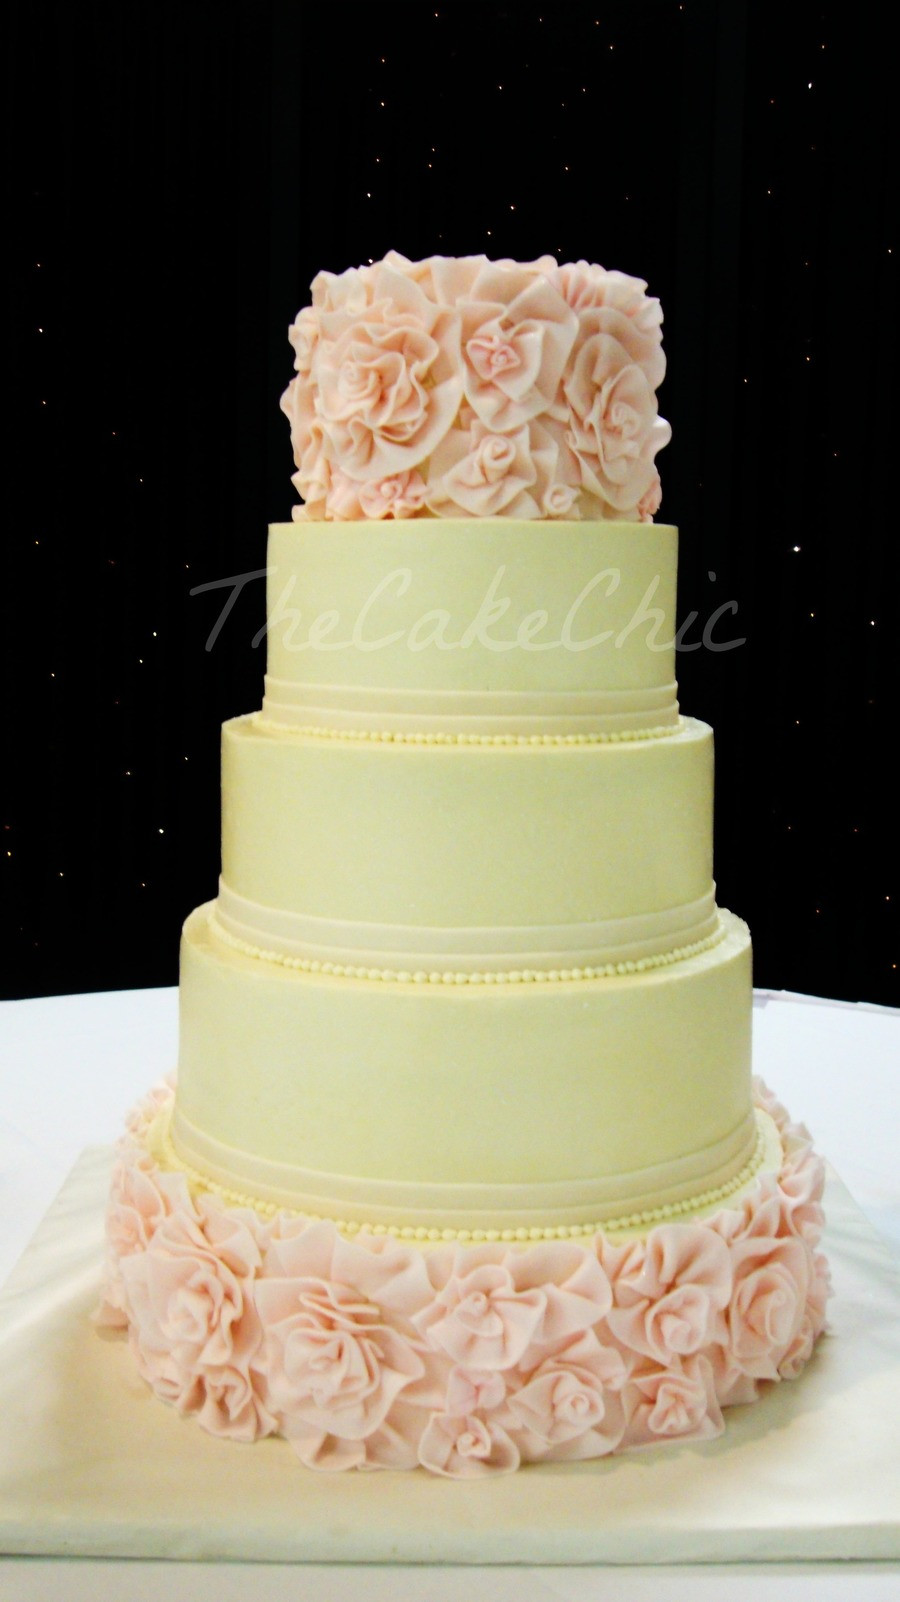 Vanilla Wedding Cake Recipes  Ivory And Blush Flower Ruffle Wedding Cake From Bottom